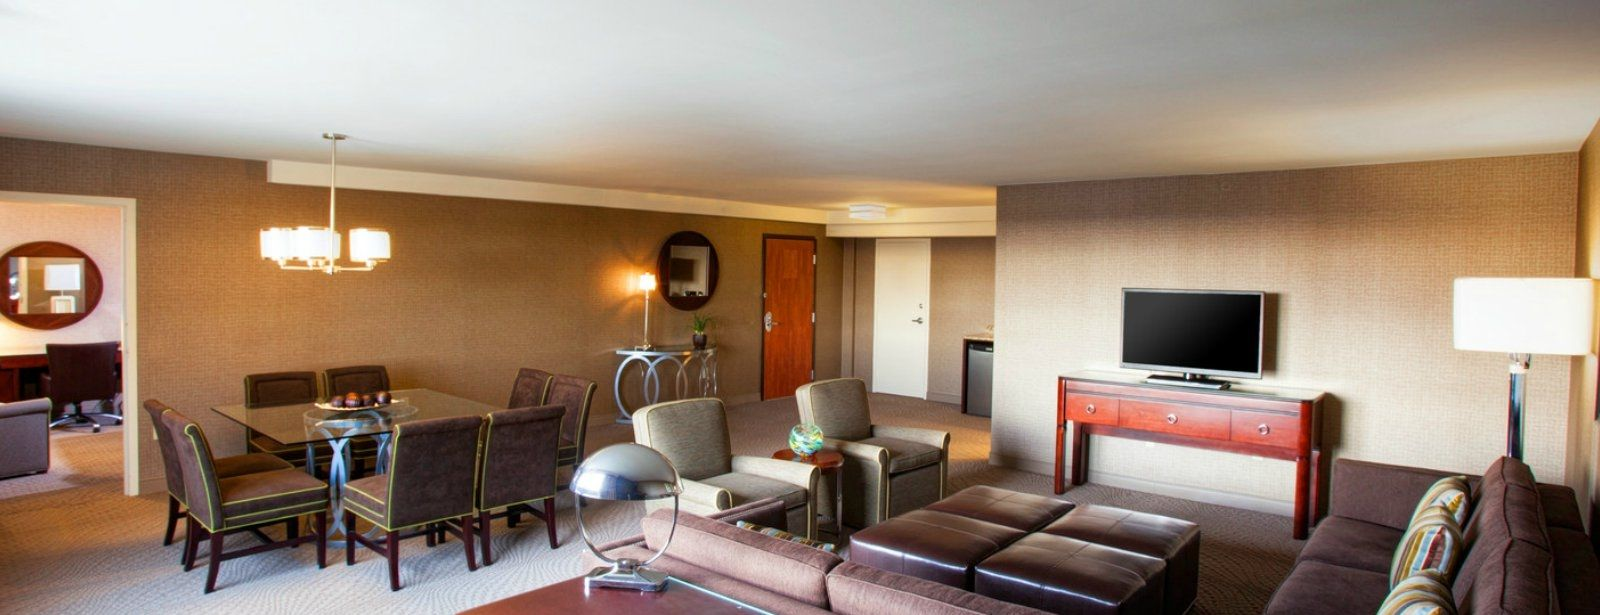 Pittsburgh Accommodations - Presidential Suite - Living Room